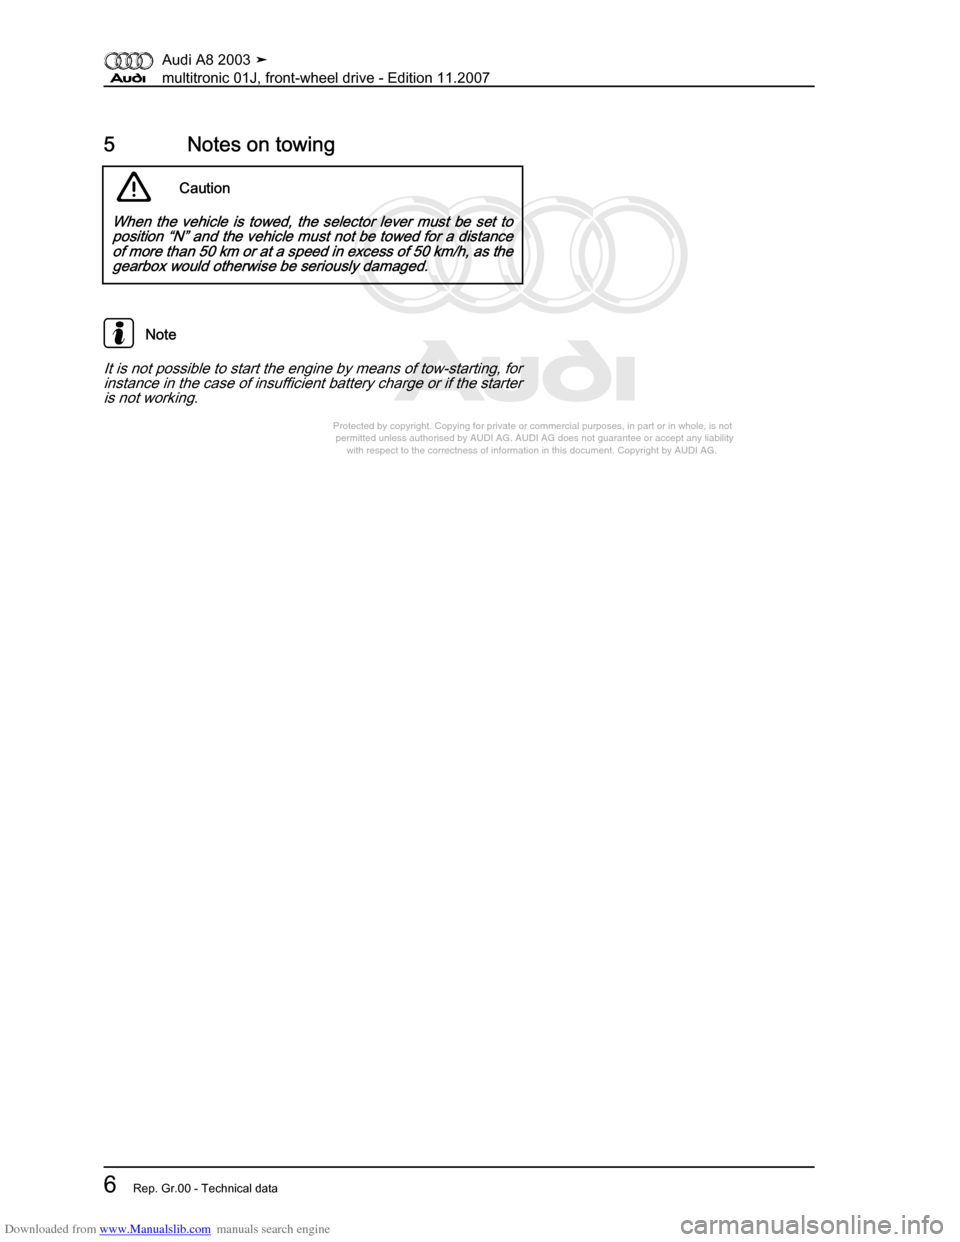 AUDI A8 2003 D3 / 2.G Multitronic System Workshop Manual, Page 10